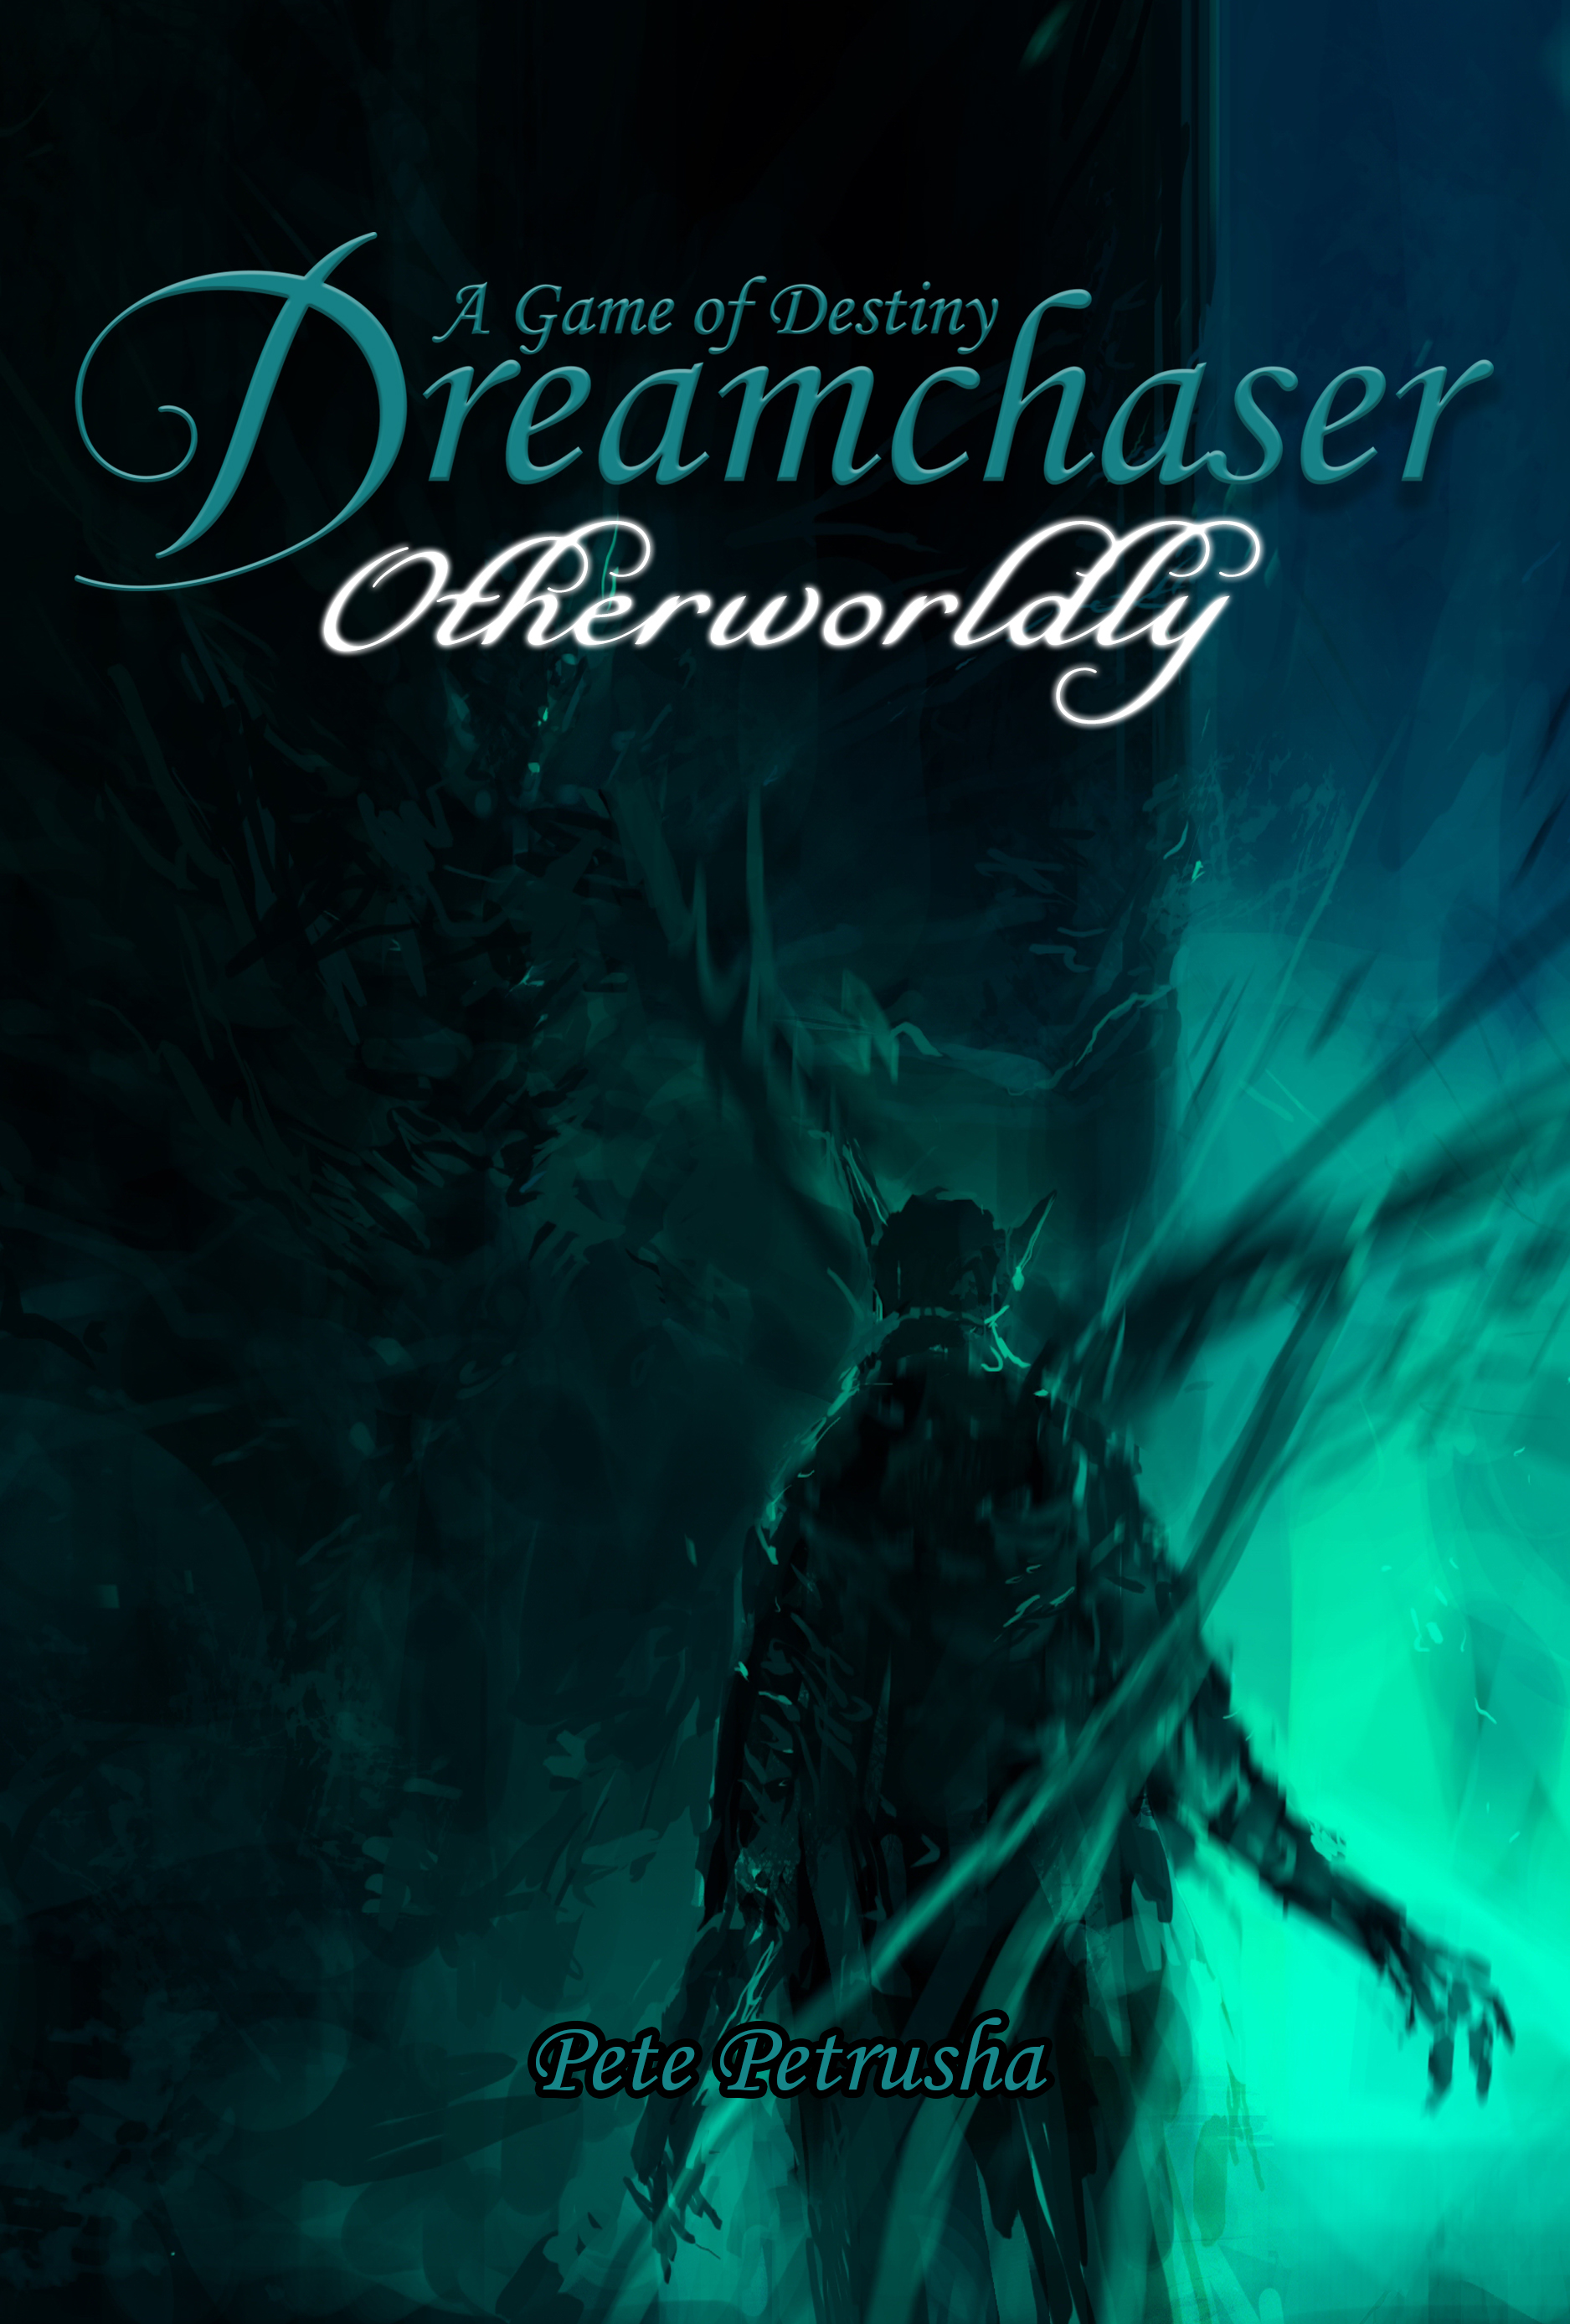 The Front Cover of  Dreamchaser: Otherworldly. (PDF Supplement)